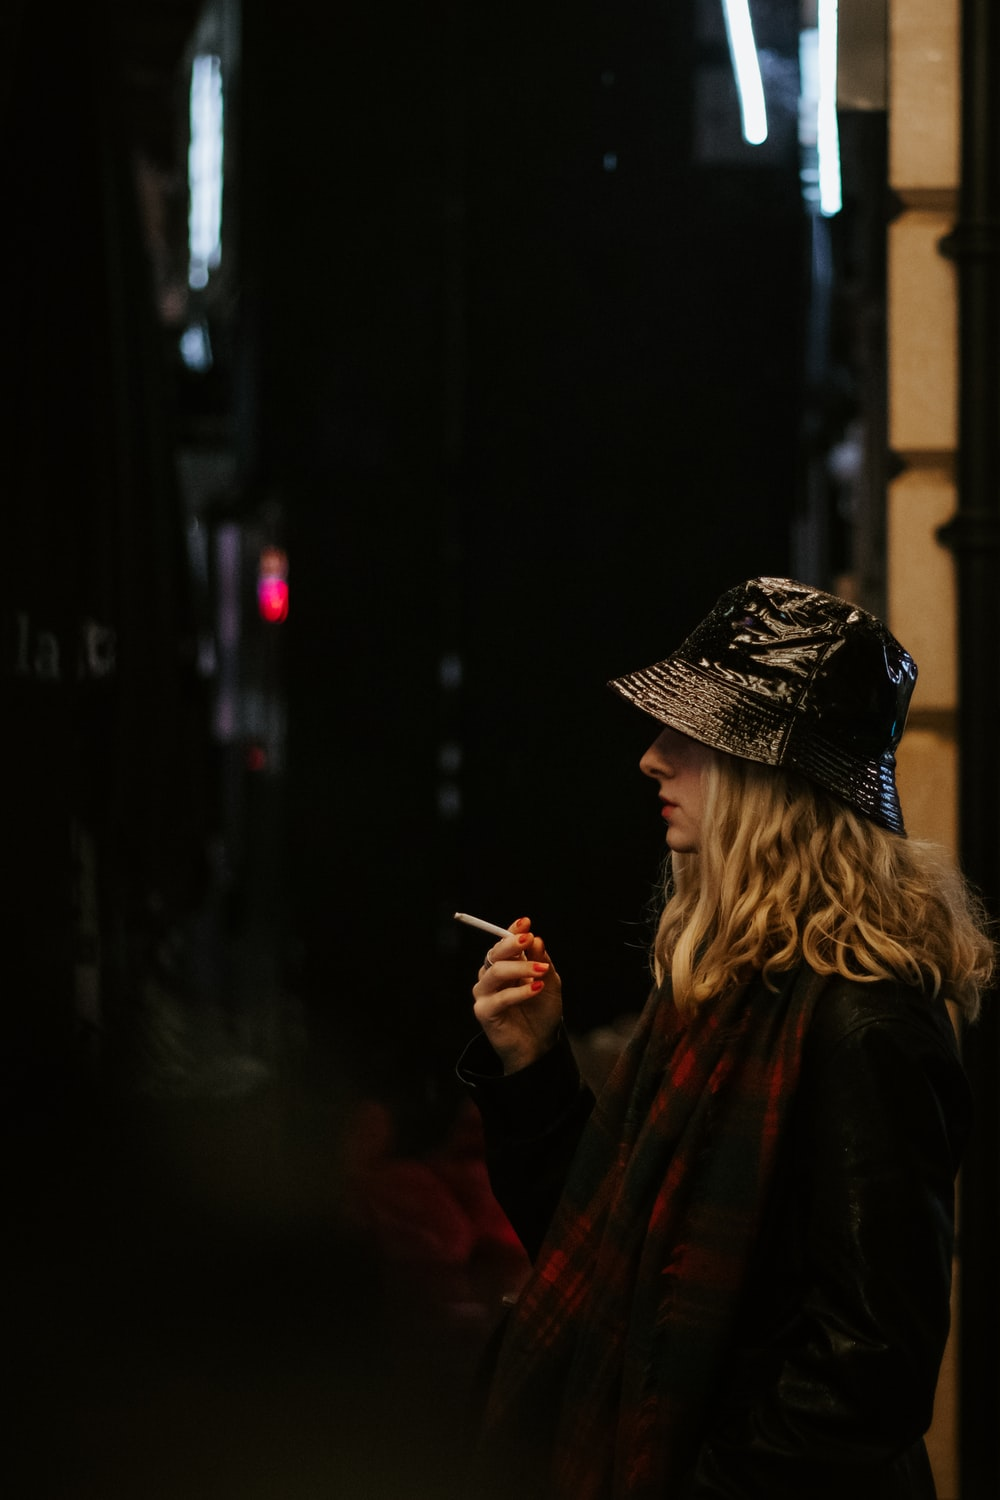 woman in black knit cap smoking cigarette